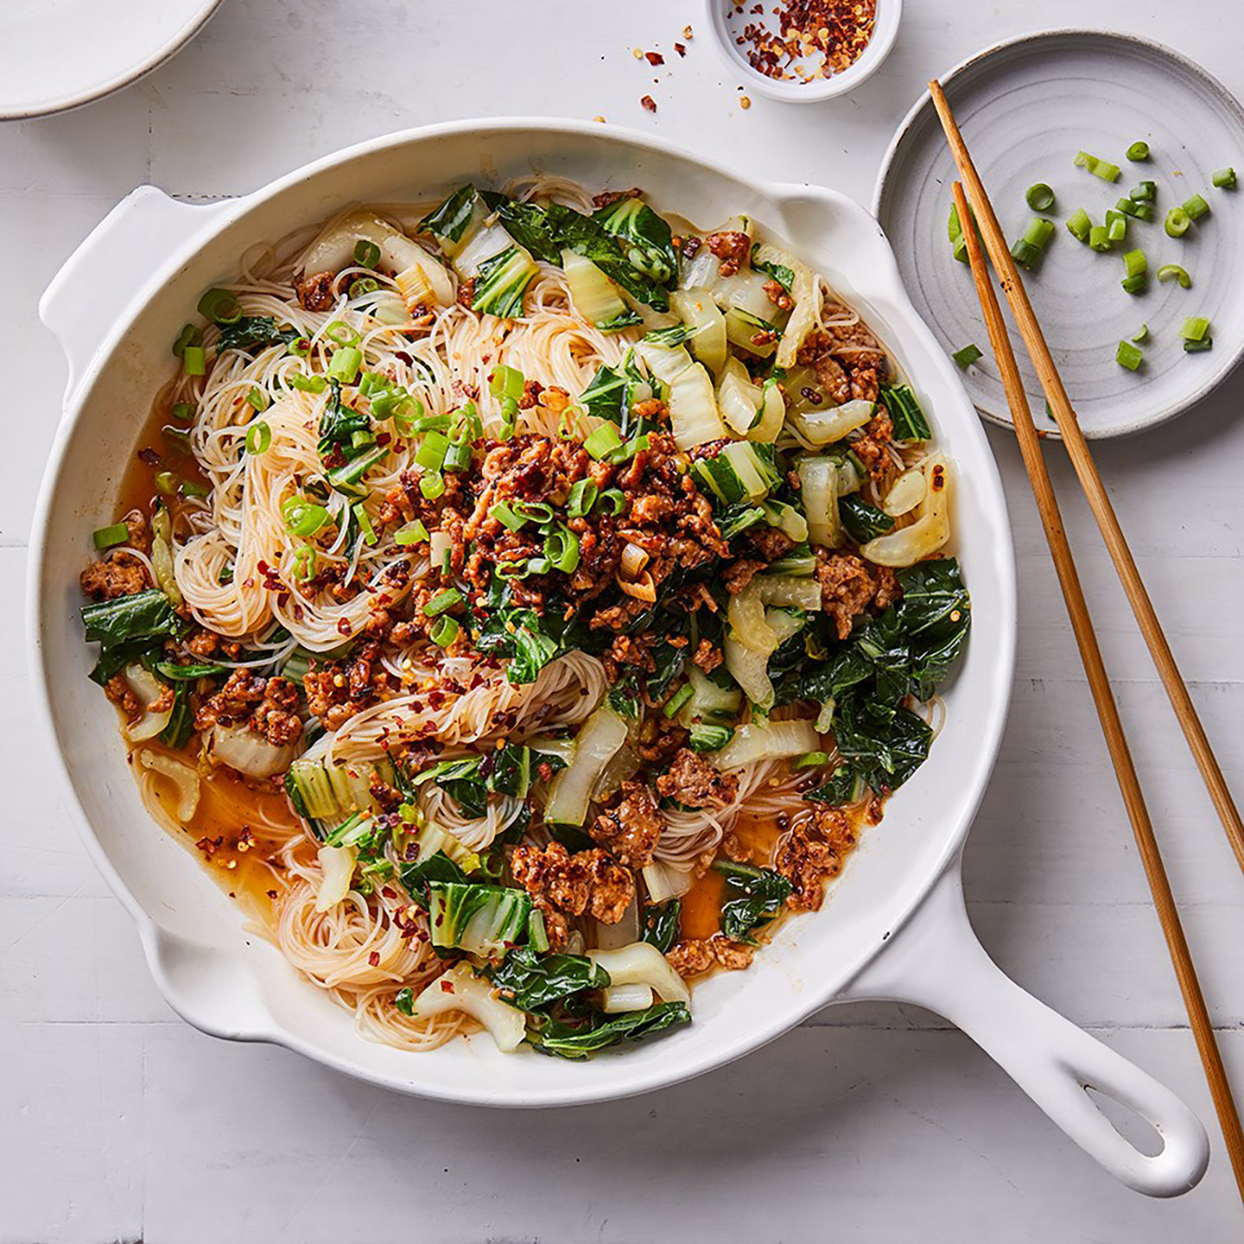 Spicy Noodles with Pork, Scallions and Bok Choy